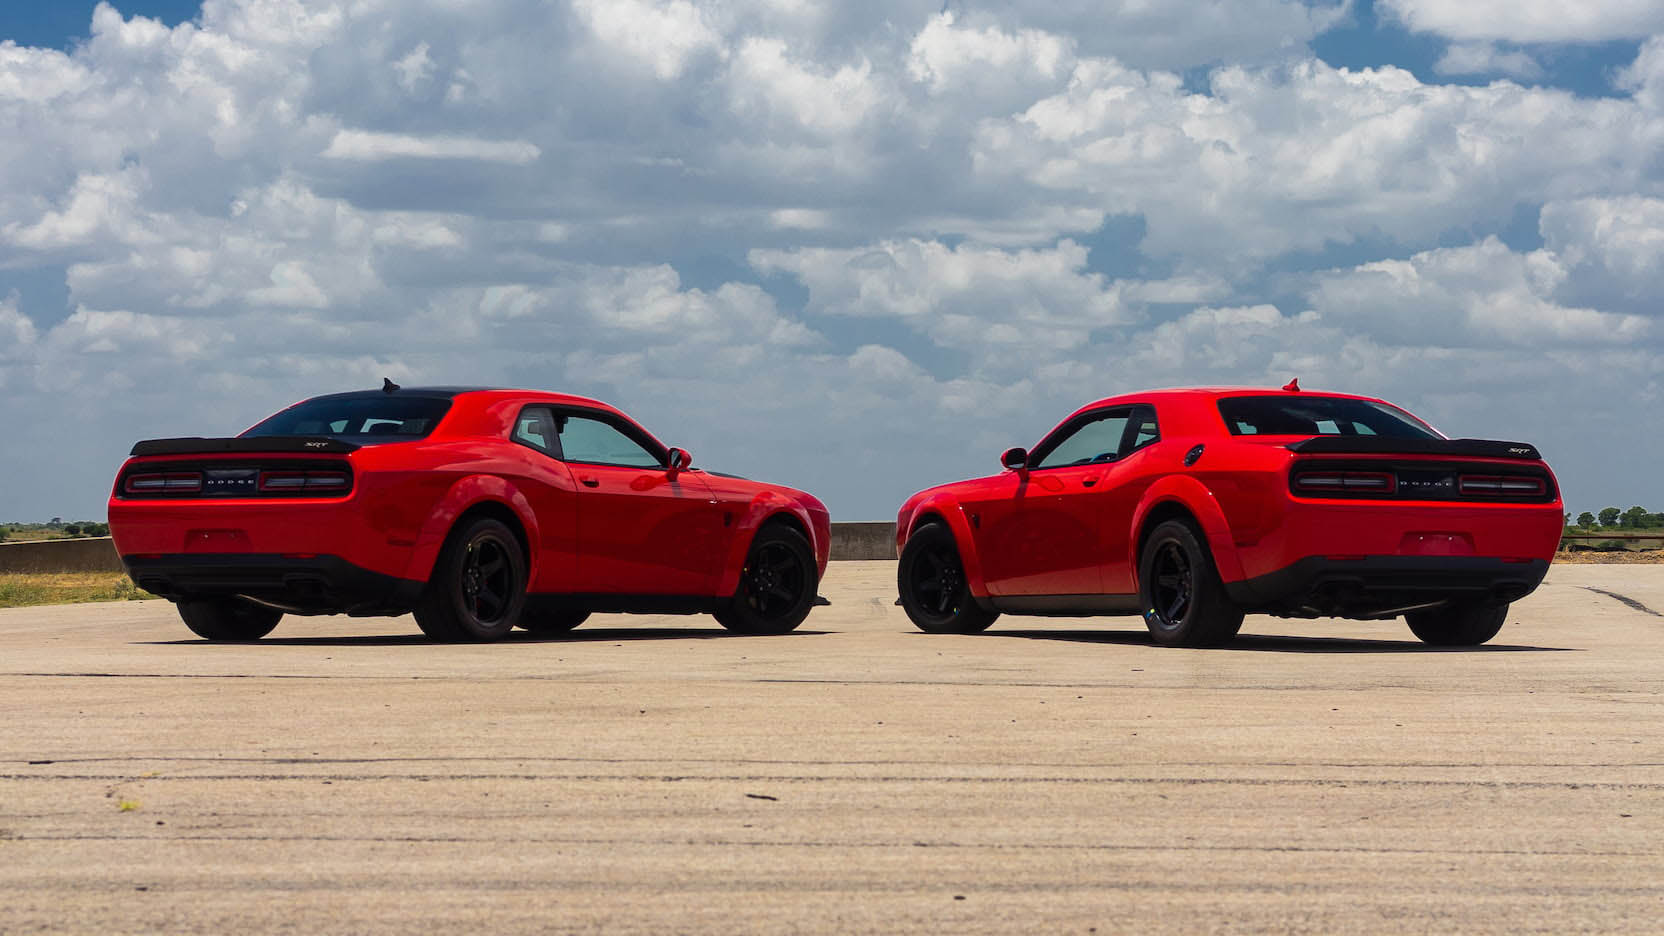 Two Dodge Challenger Demon in auction (9)